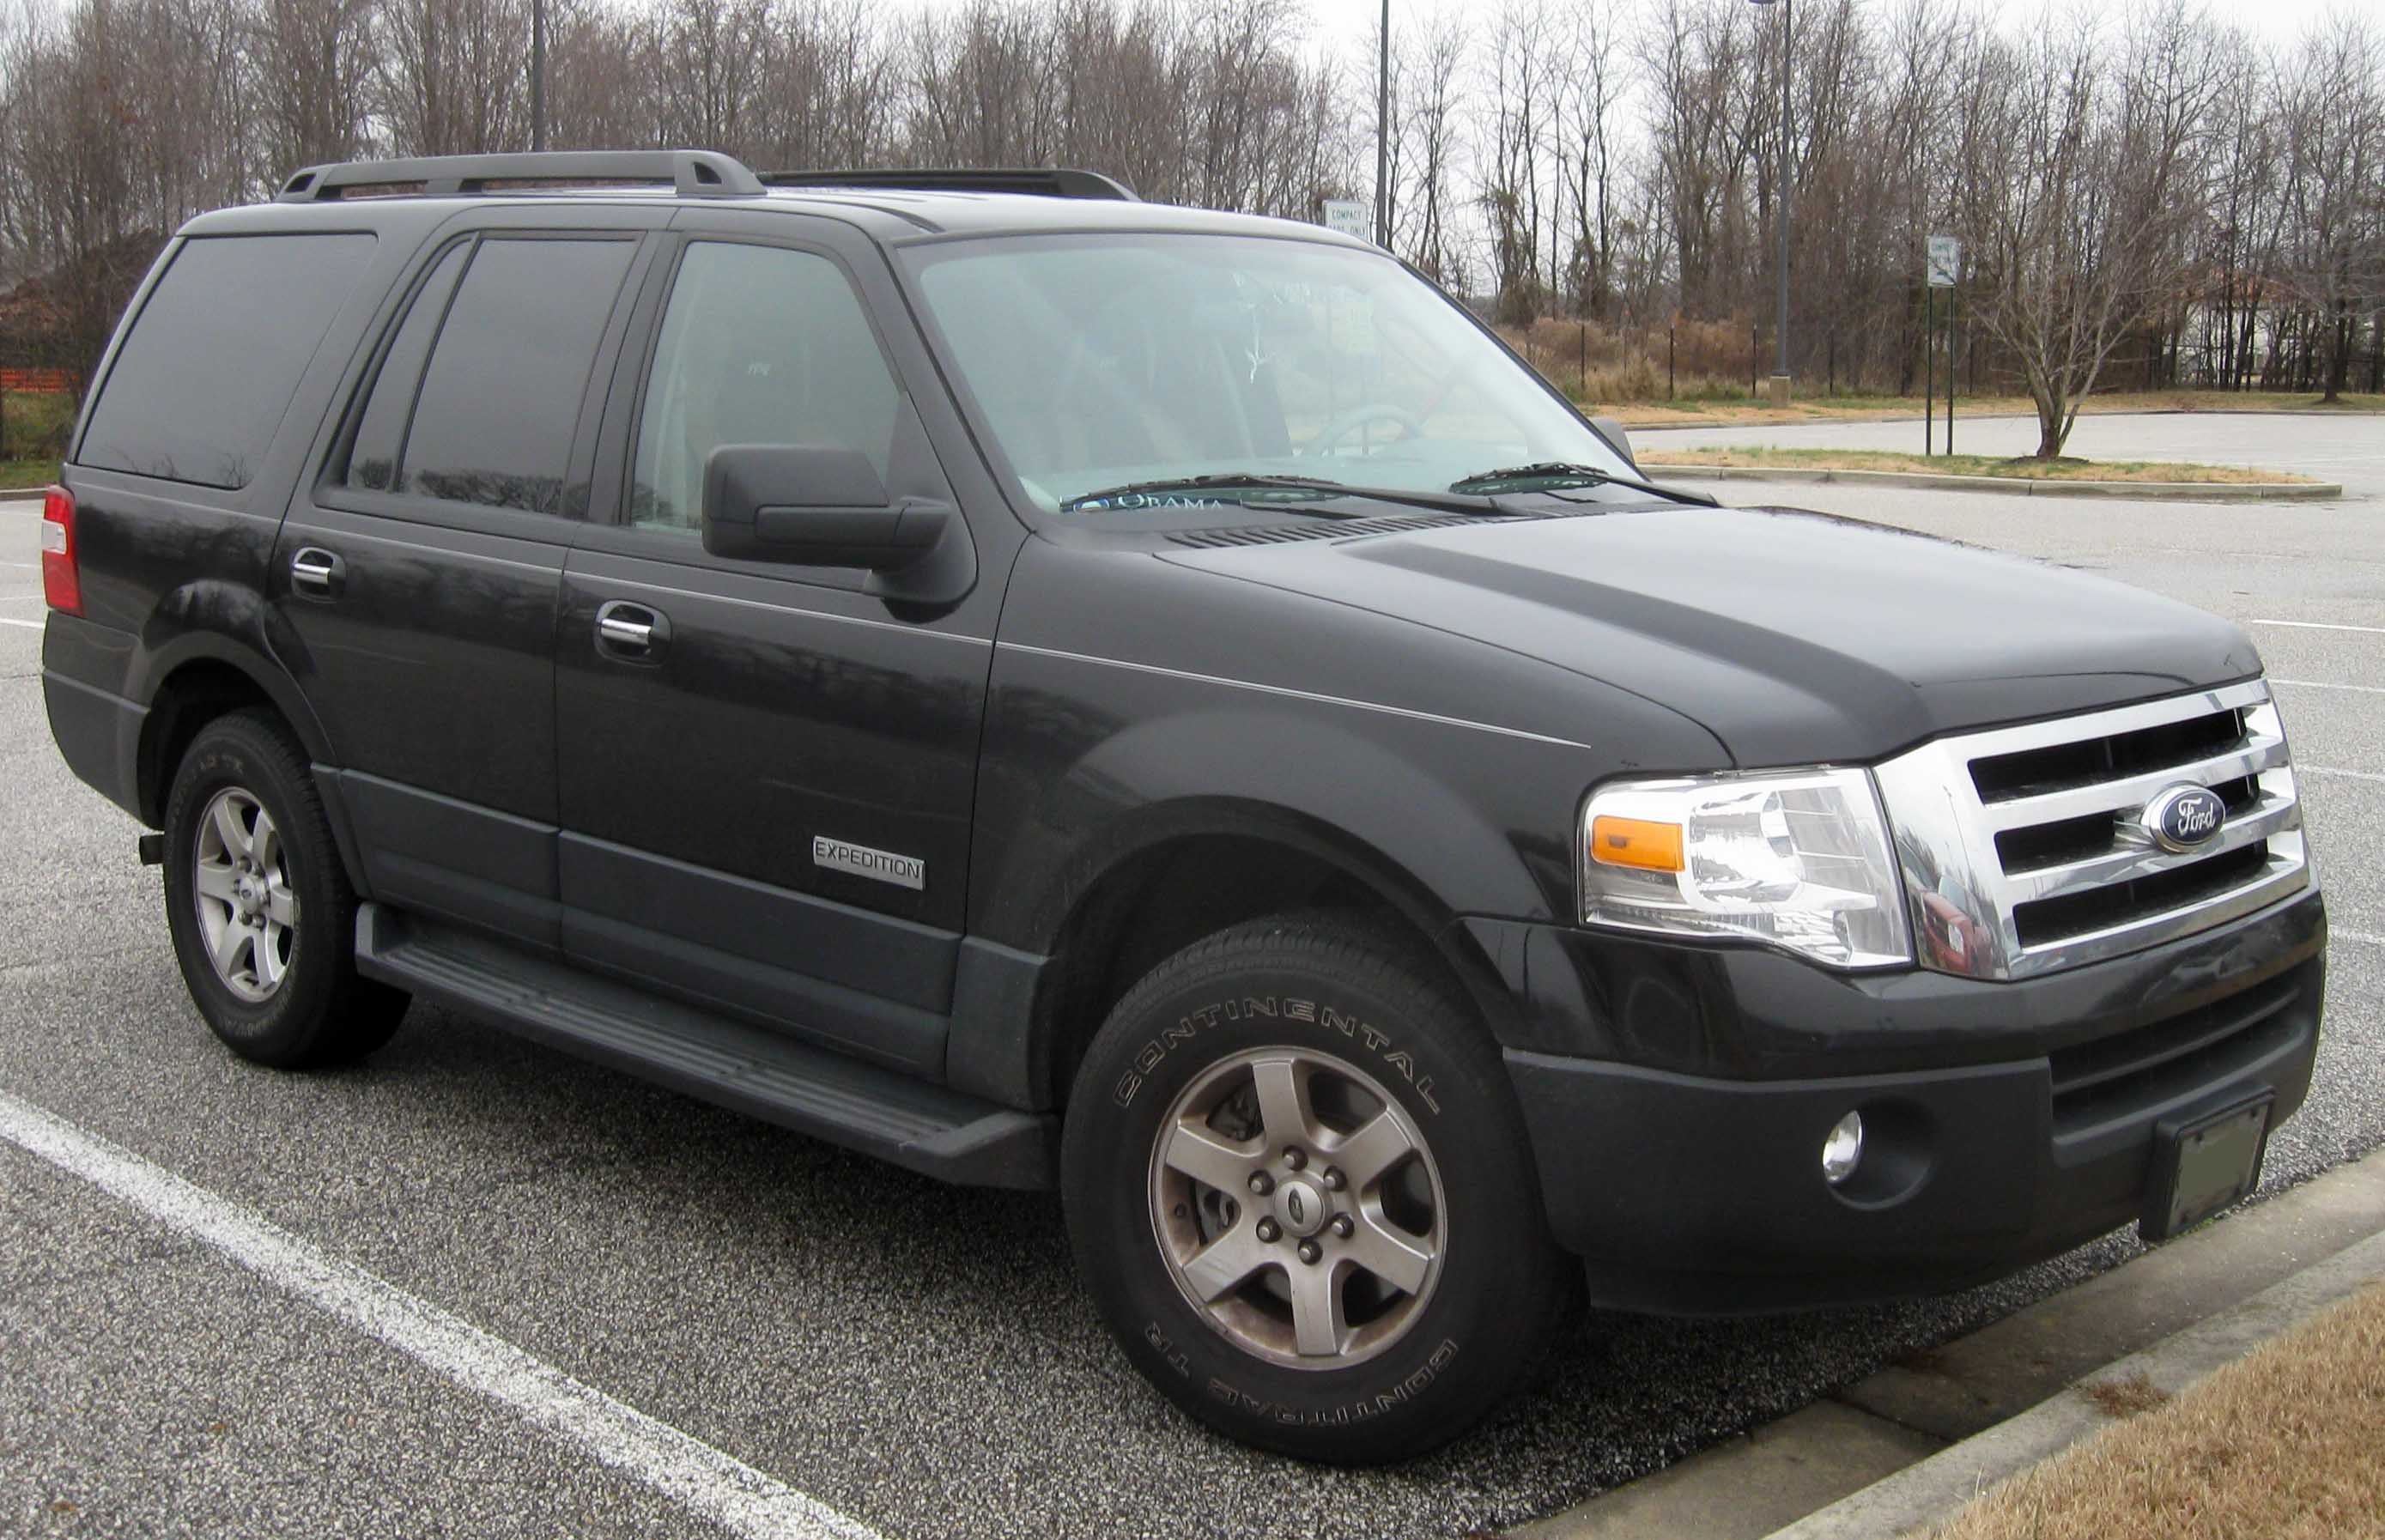 Check Tpms System >> 2008 Ford Expedition VIN Check, Specs & Recalls ...